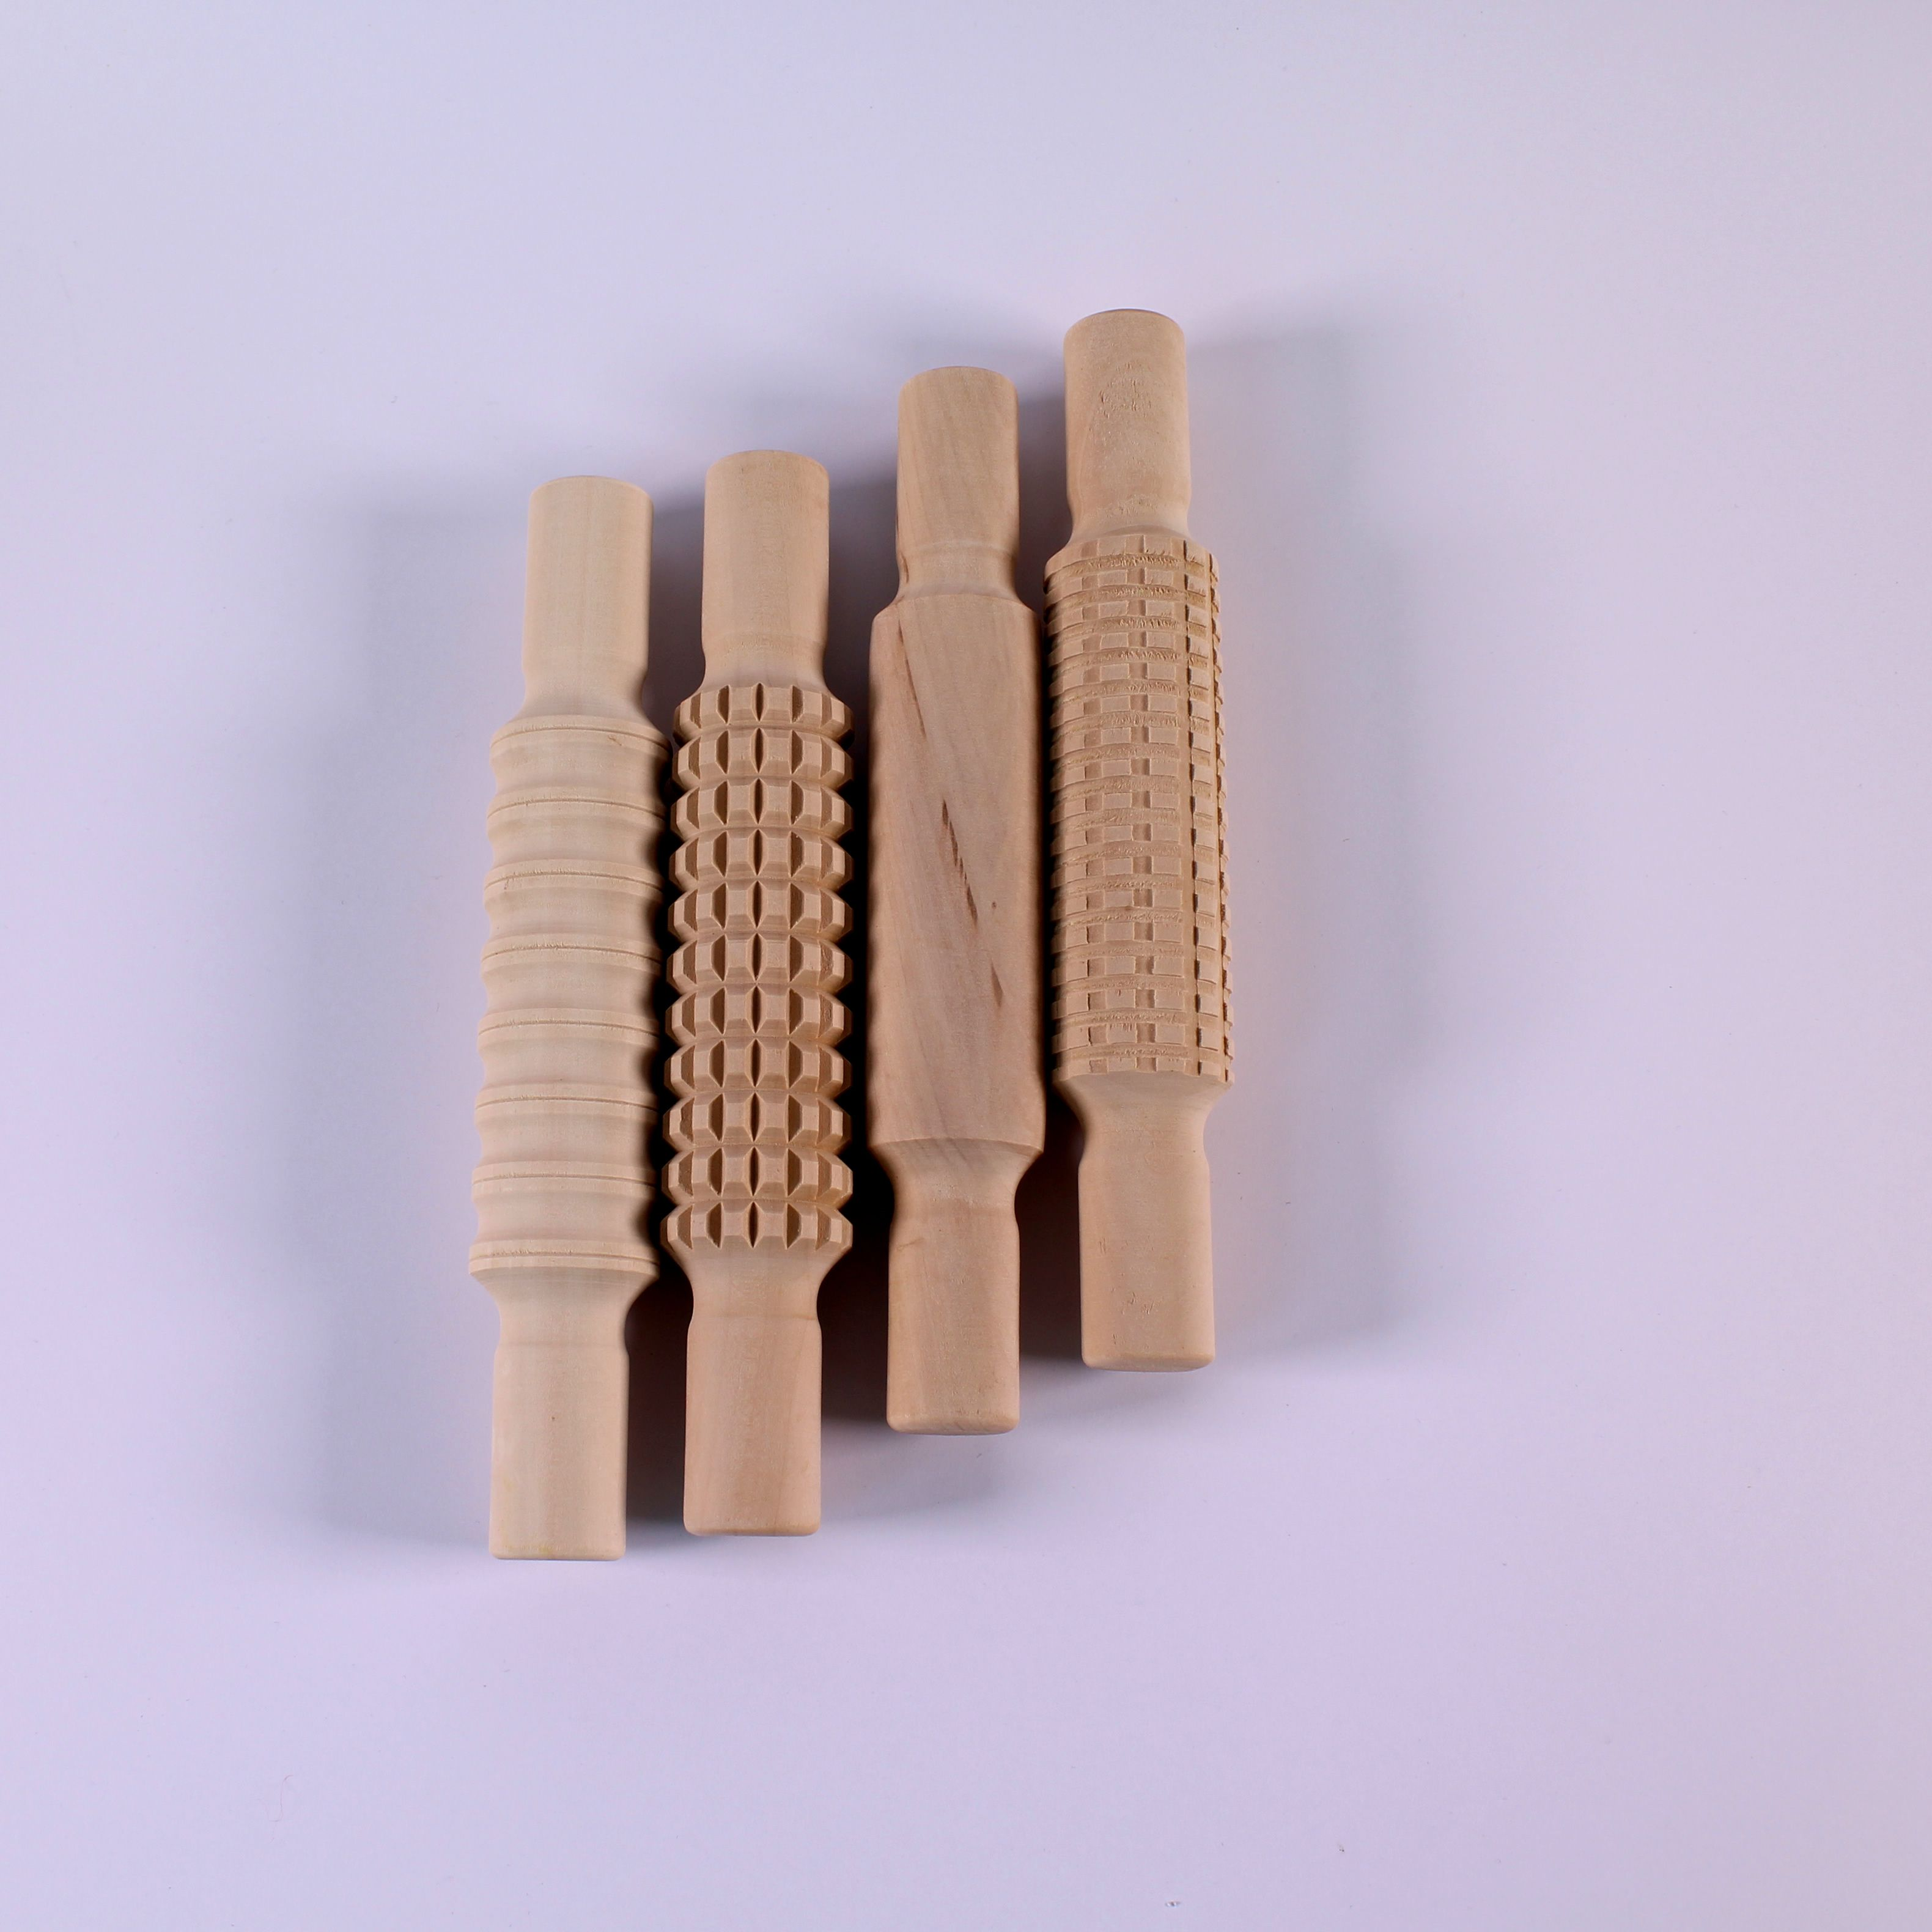 Wooden Patterned Rolling Pins